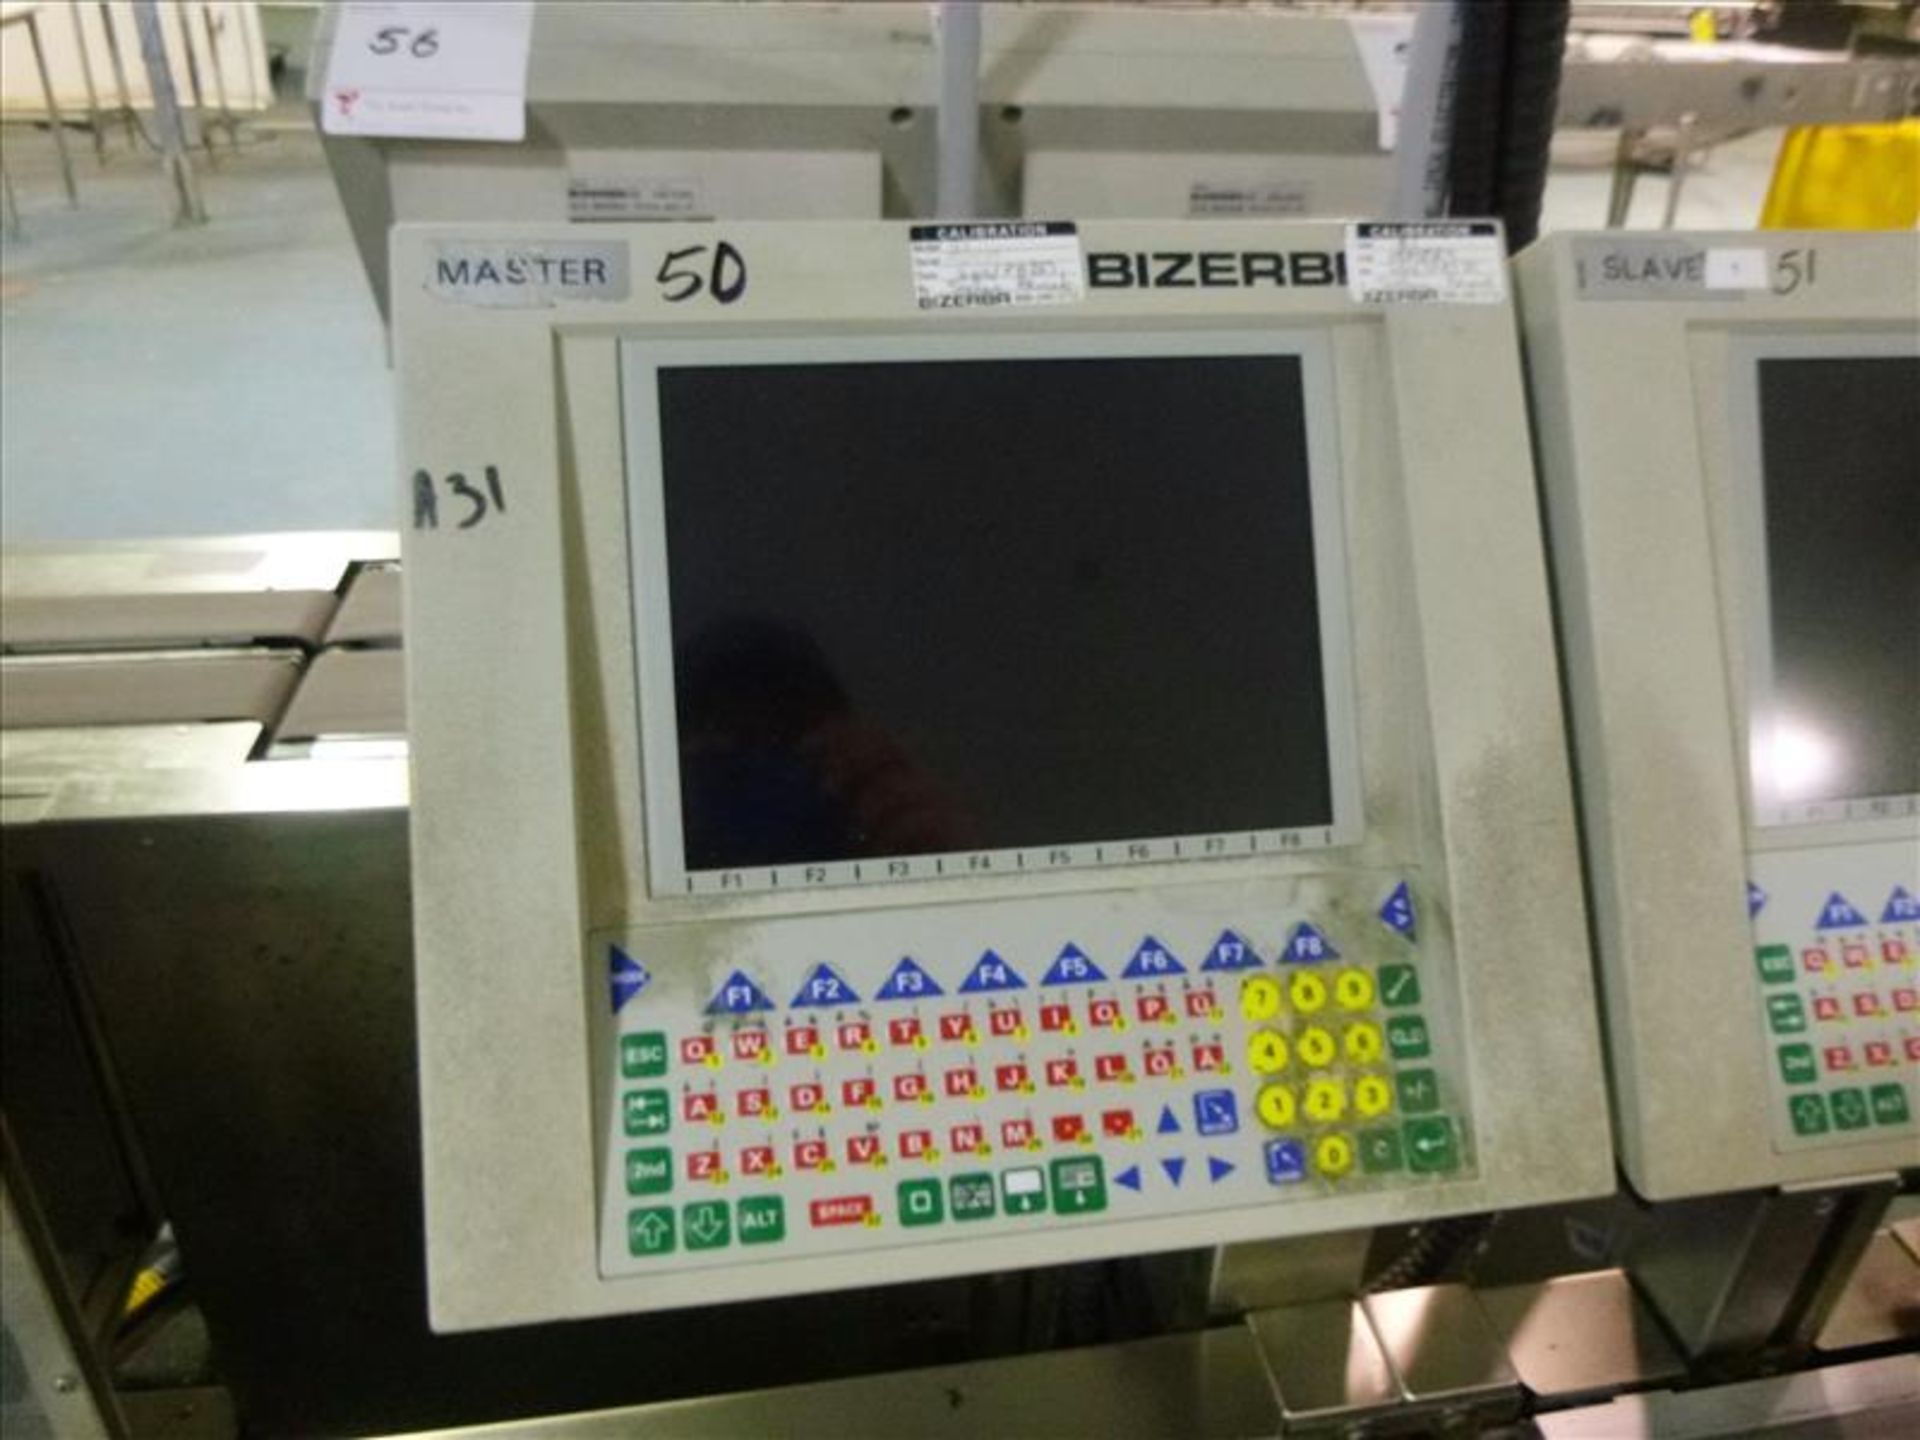 Lot 50 - Bizerba in-line check-weigher system (MASTER) w/ Bizerba GS label printer and Bizerba AB controller,